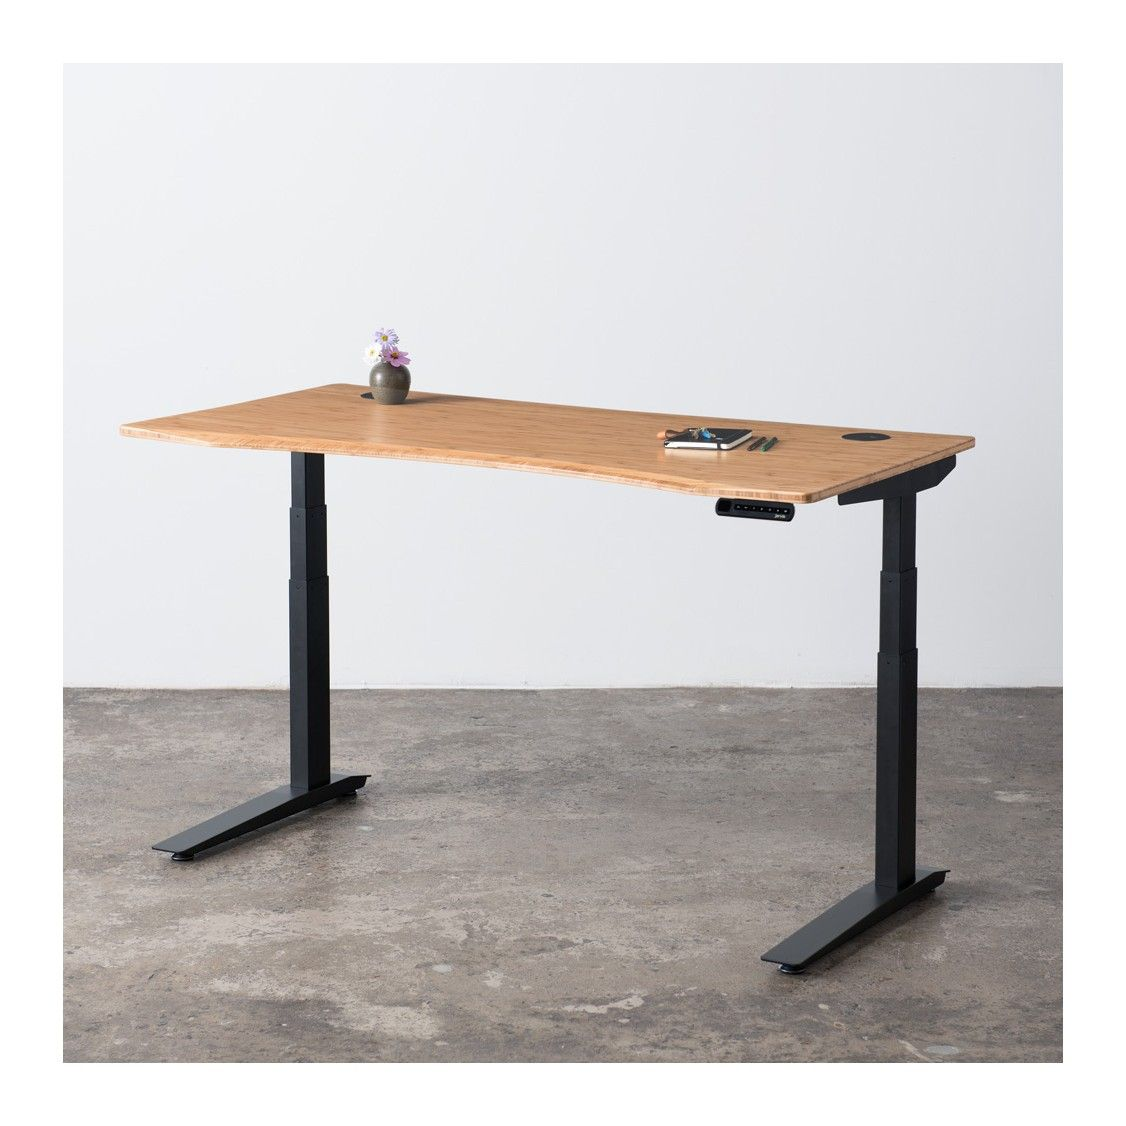 Awesome Jarvis Bamboo Standing Desk Ergo Depot Products Desk Download Free Architecture Designs Sospemadebymaigaardcom